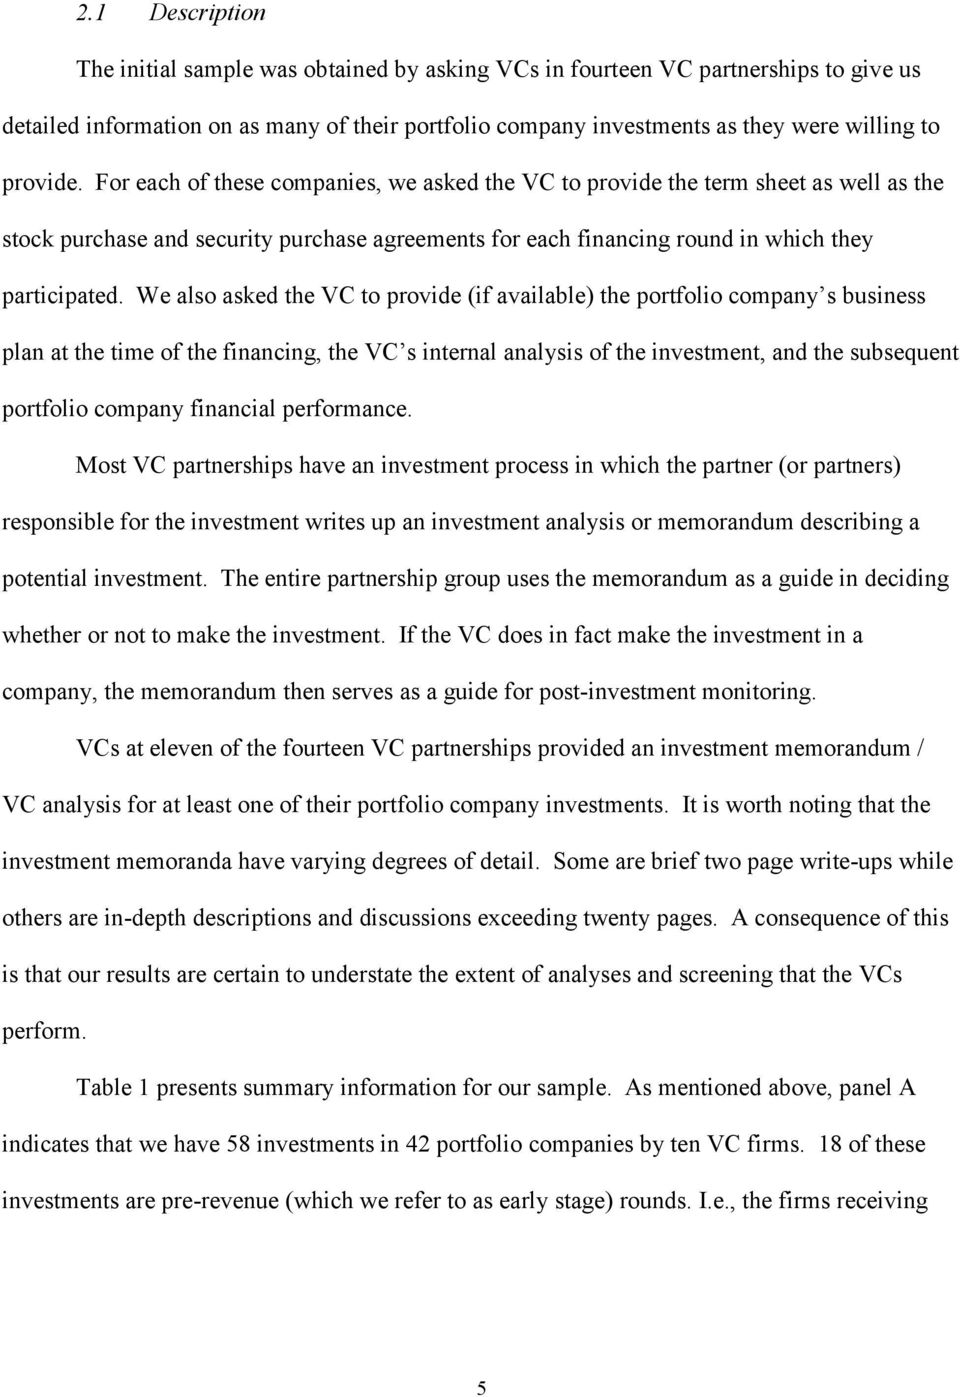 We also asked the VC to provide (if available) the portfolio company s business plan at the time of the financing, the VC s internal analysis of the investment, and the subsequent portfolio company